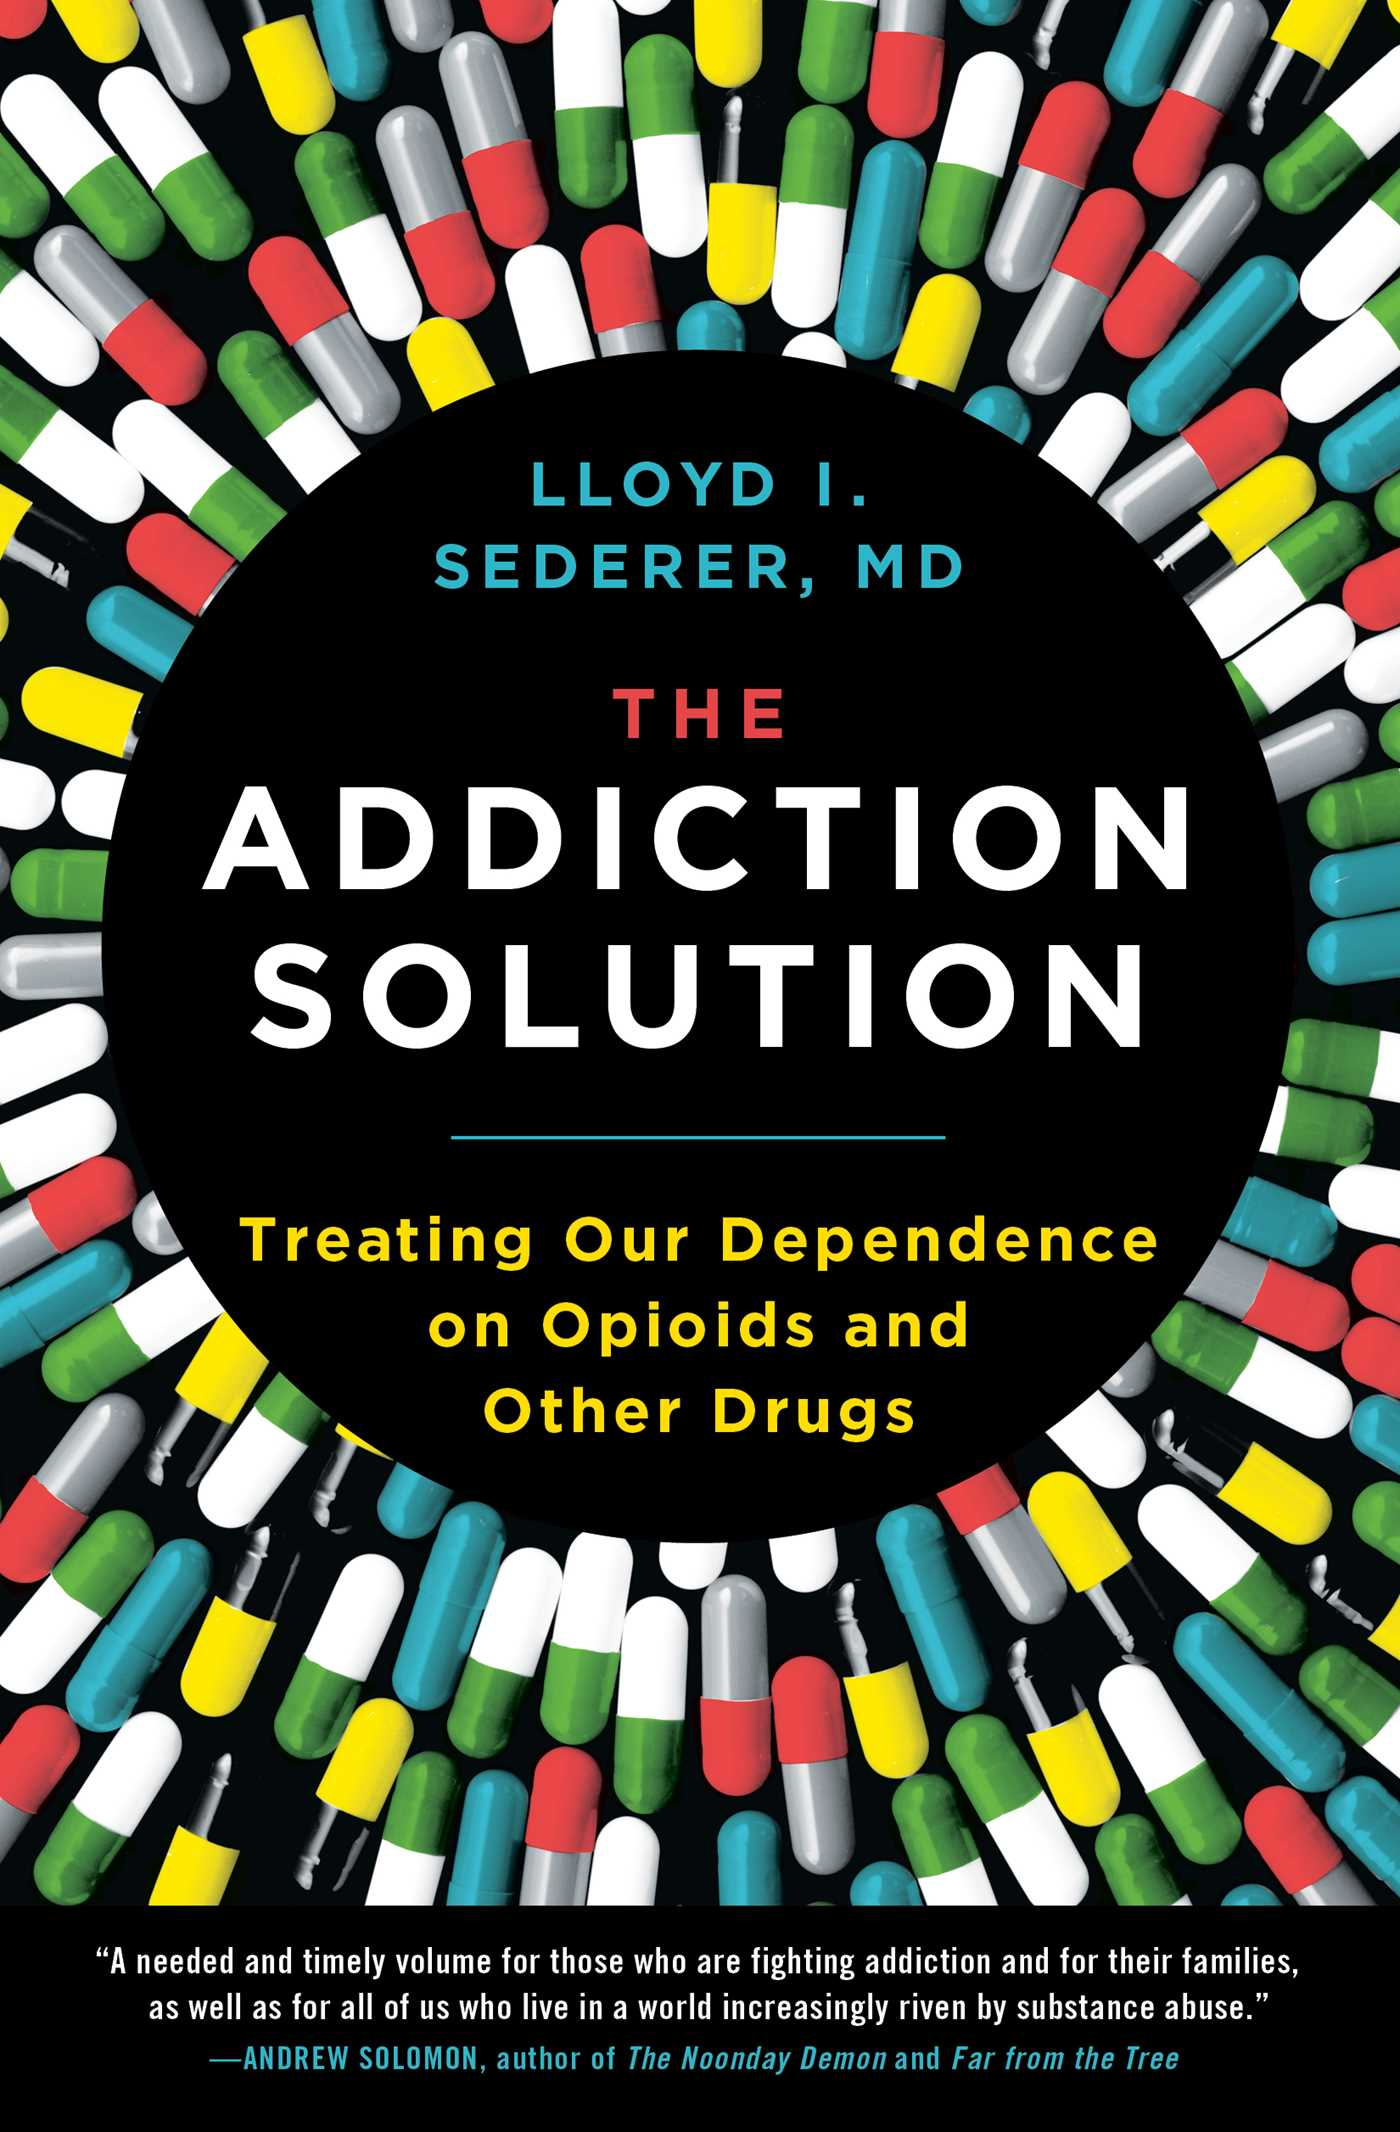 The Addiction Solution Treating Our Dependence on Opioids and Other Drugs